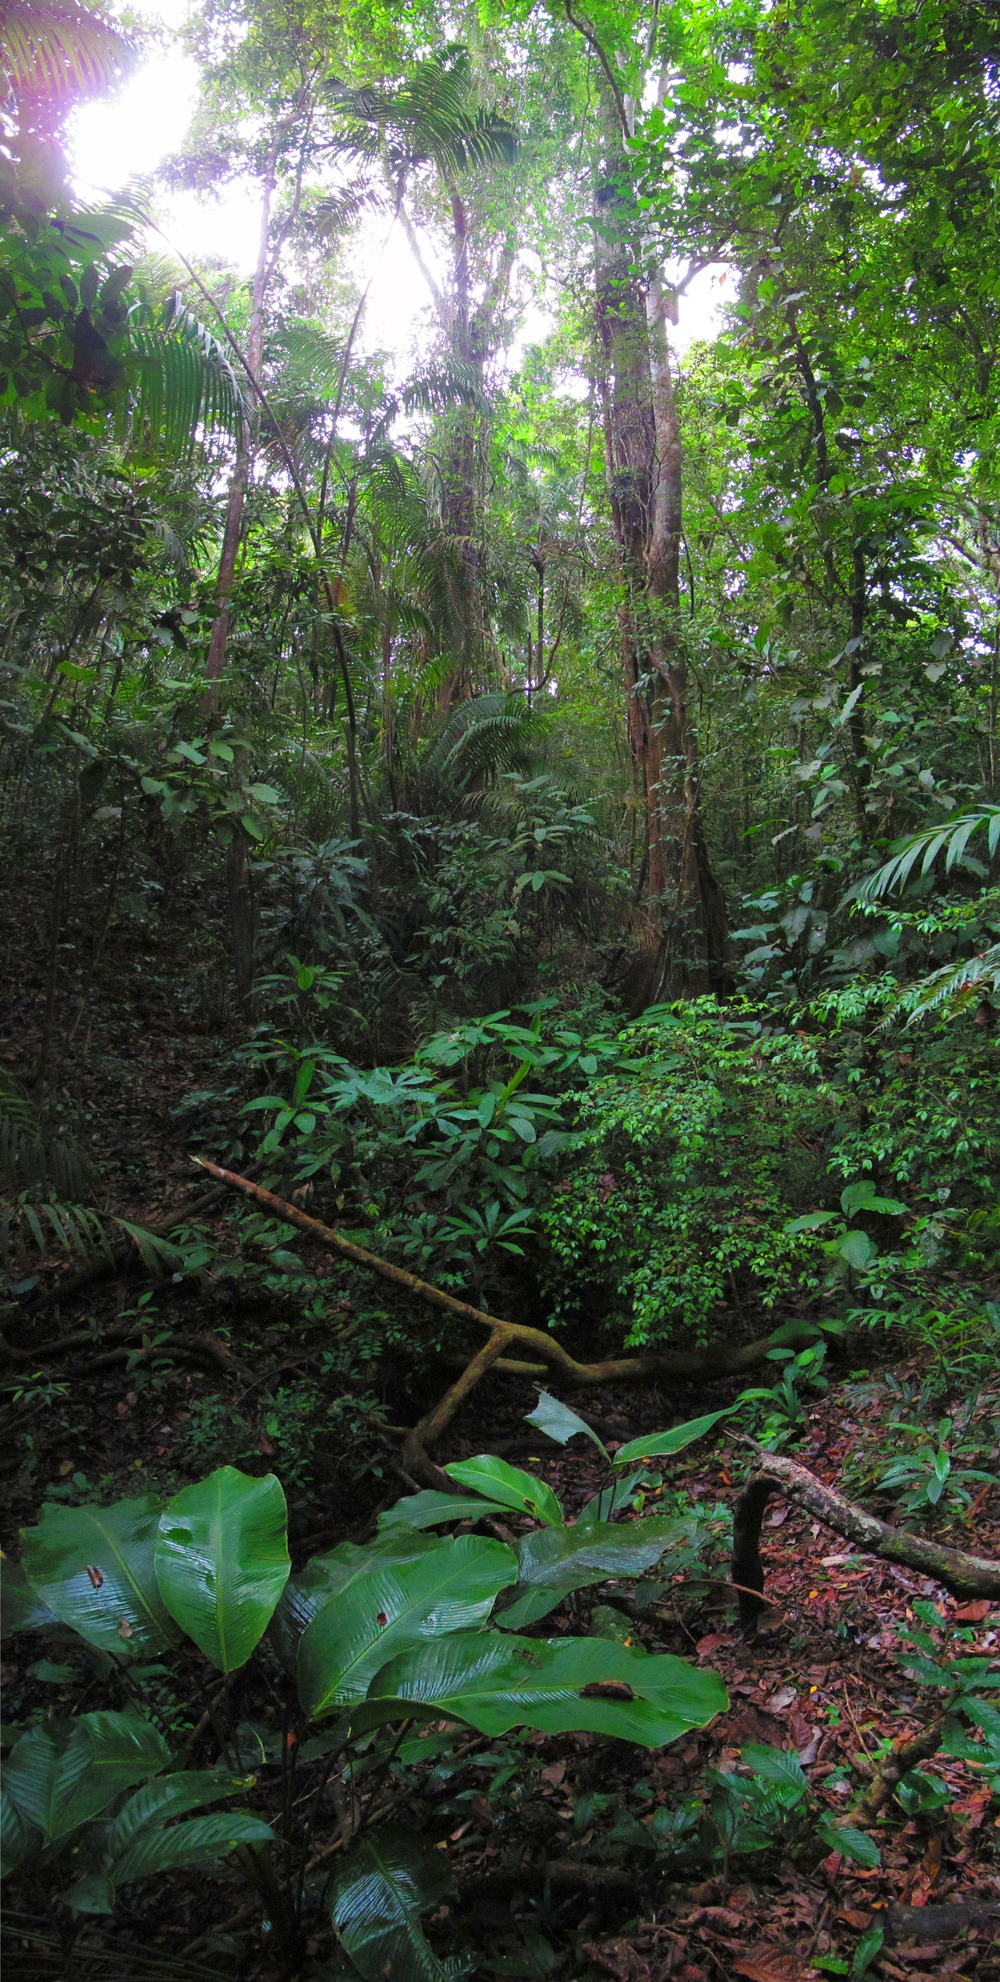 Lowland tropical rainforest